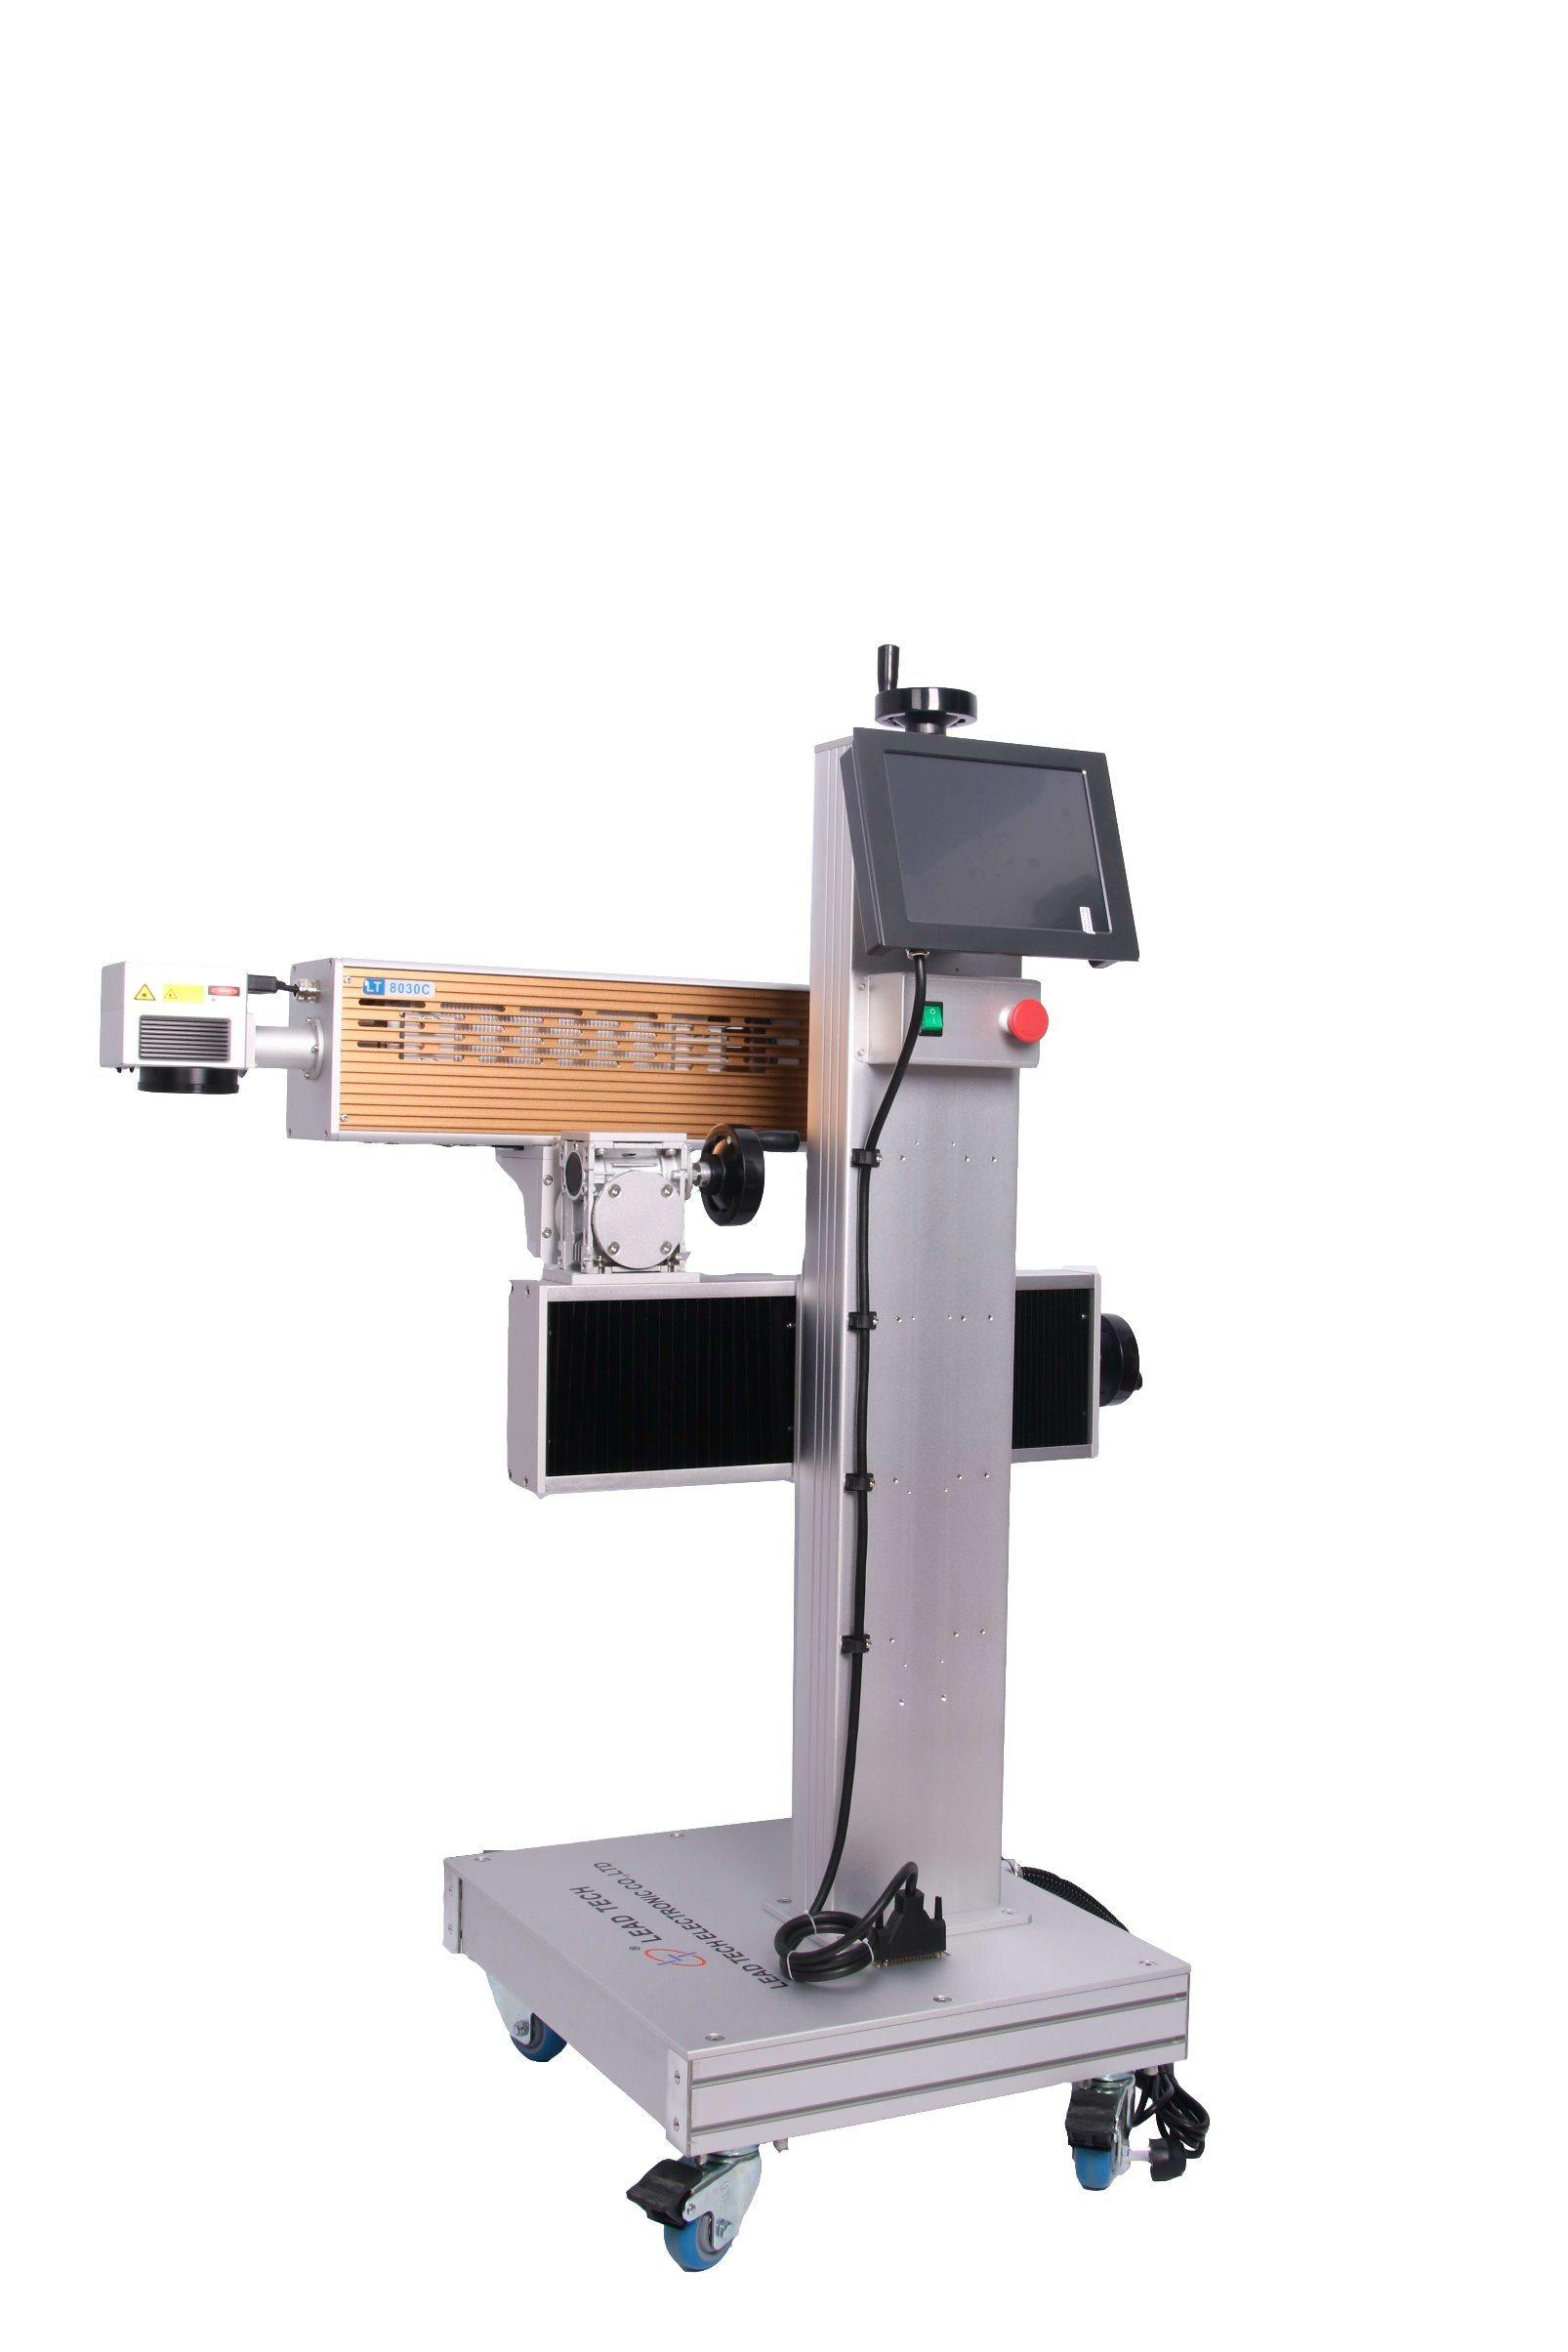 Lt8020c/Lt8030c CO2 20W/30W High Speed Digital Laser Marking Printer for PVC Pipe Marking